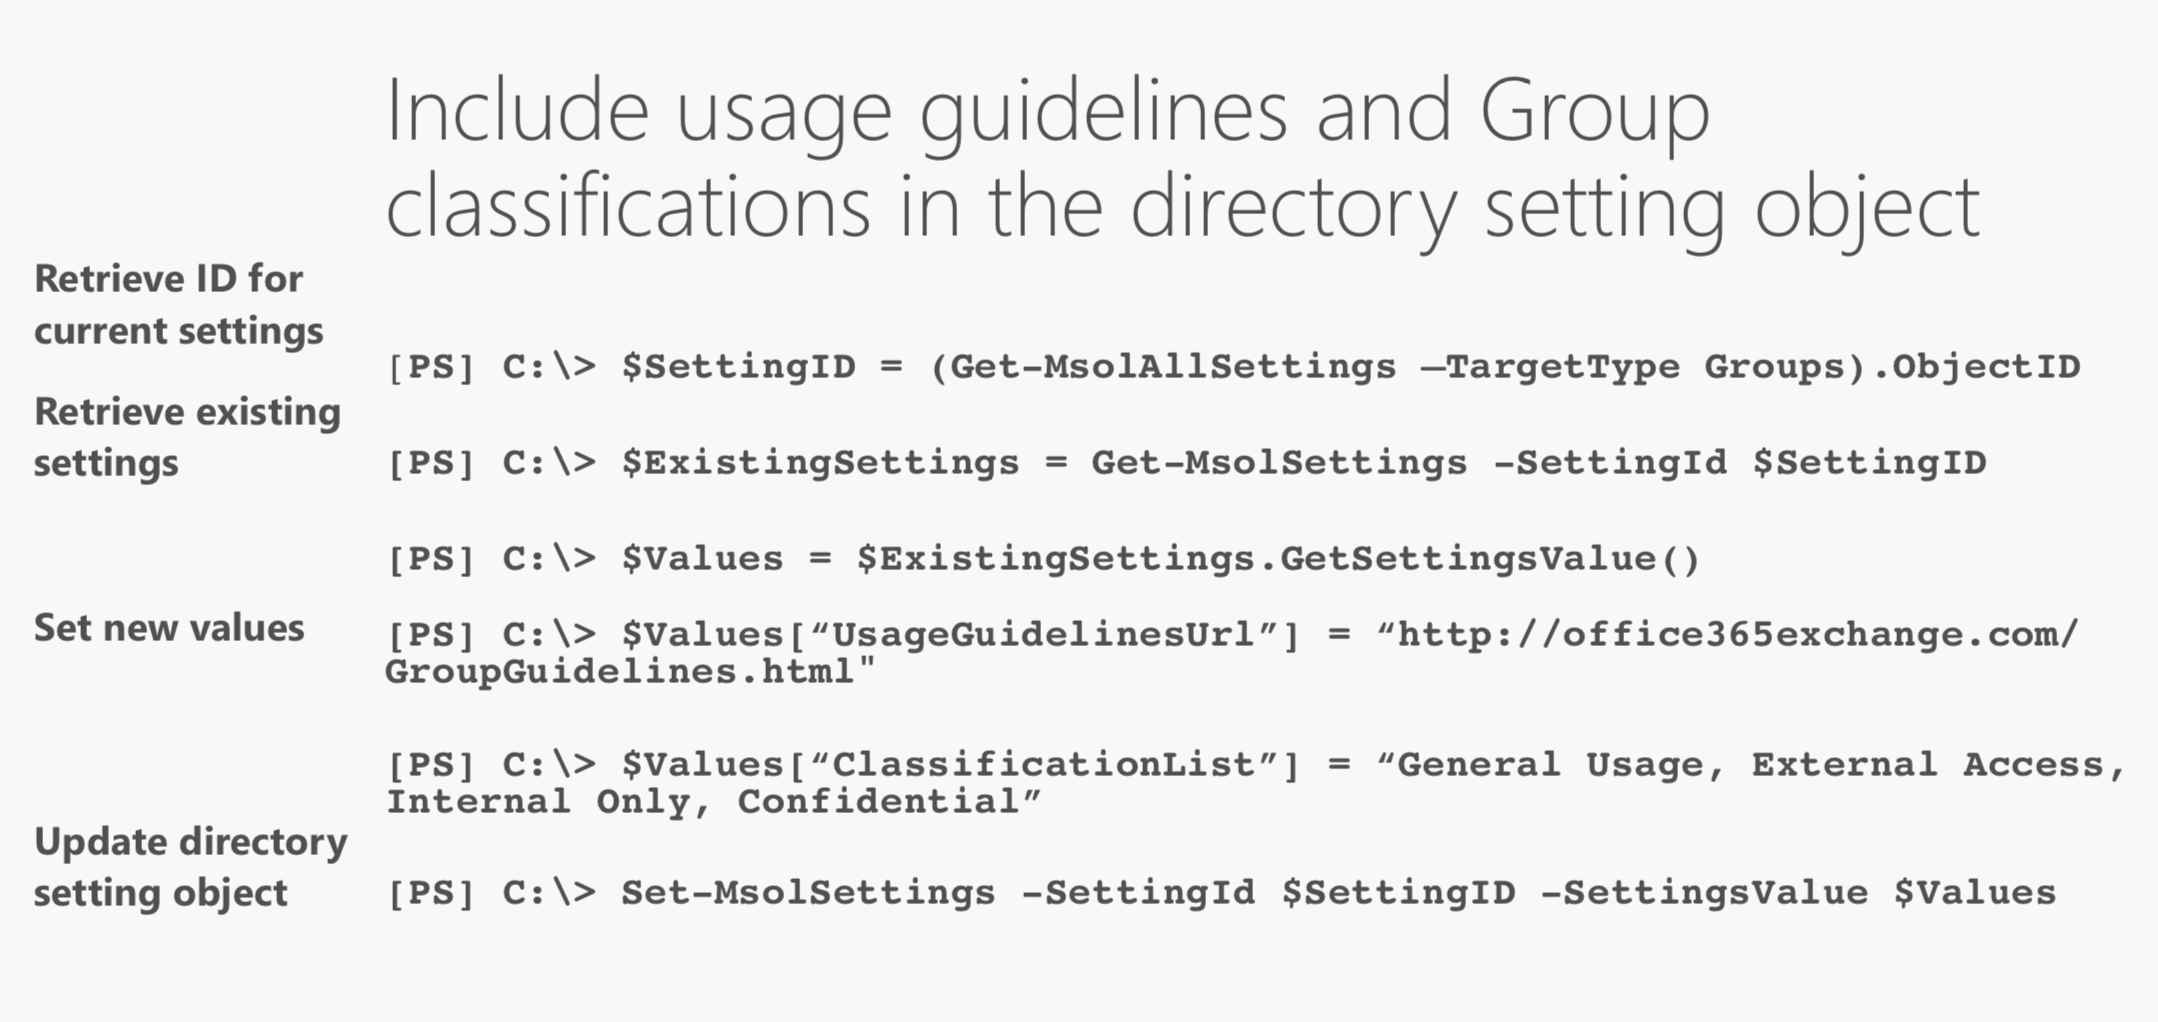 Include usage guidelines and Group classifications in the directory setting object.